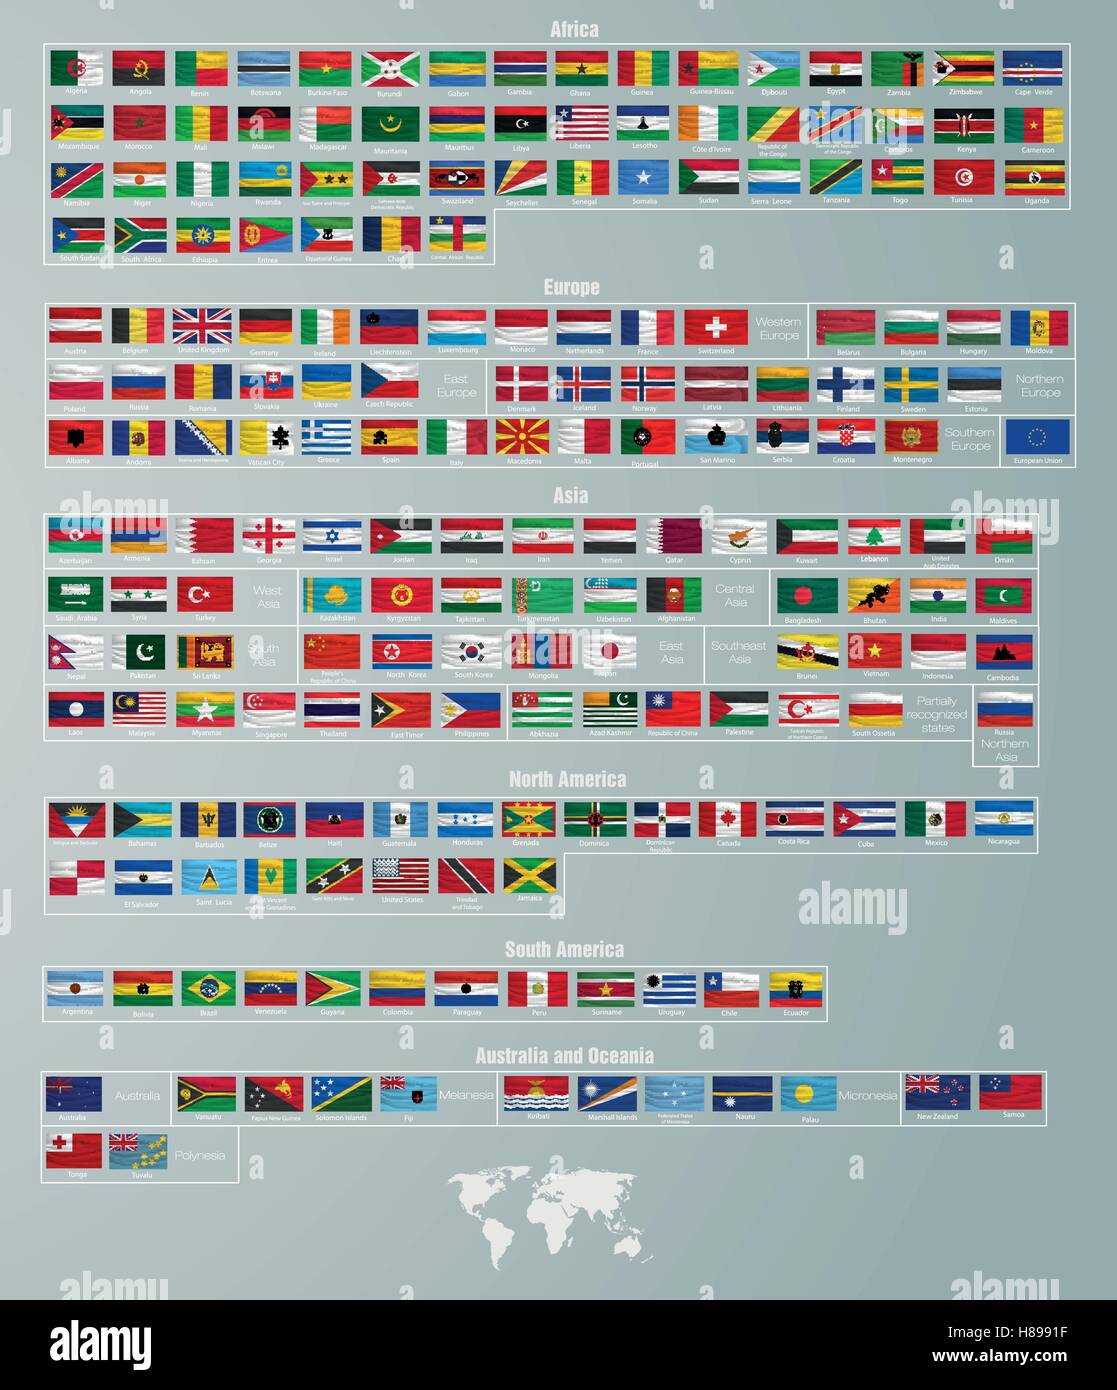 flags of countries divided by parts of the world - Stock Image